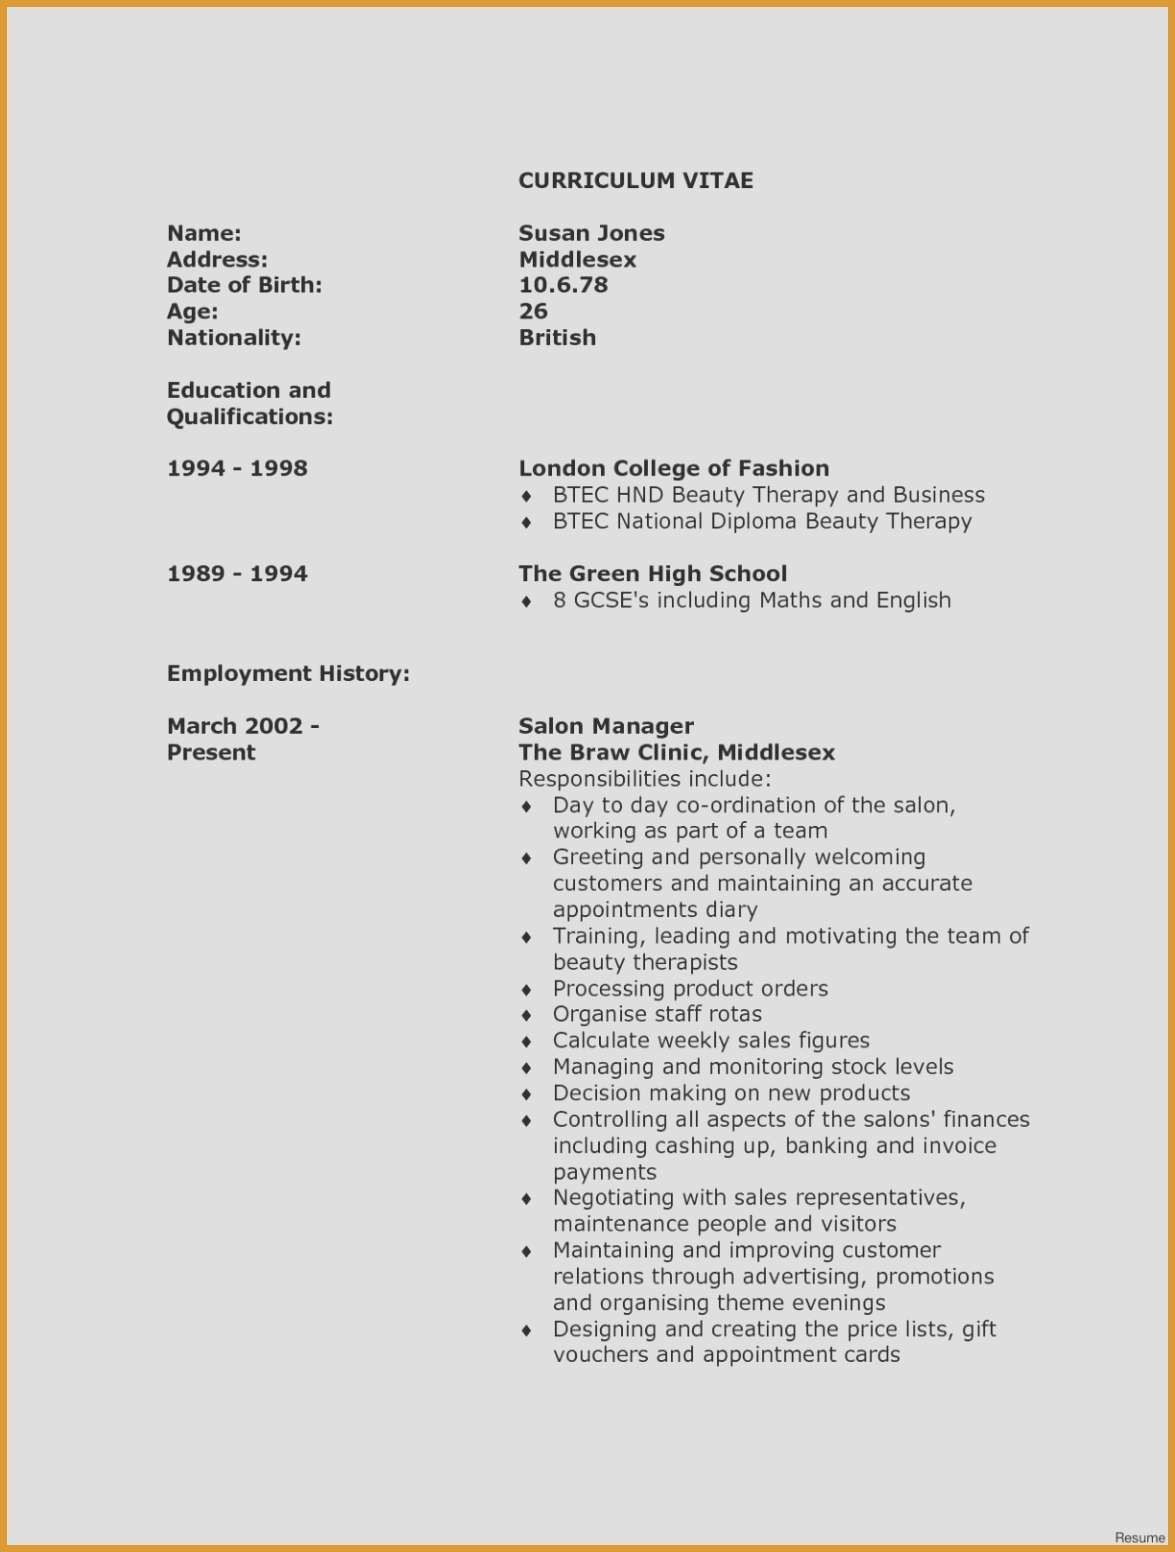 hvac resume template example-Hvac Resume Samples Elegant Resume for Teacher Elegant Teaching assistant Resume Fresh Resume 0d Hvac 20-i